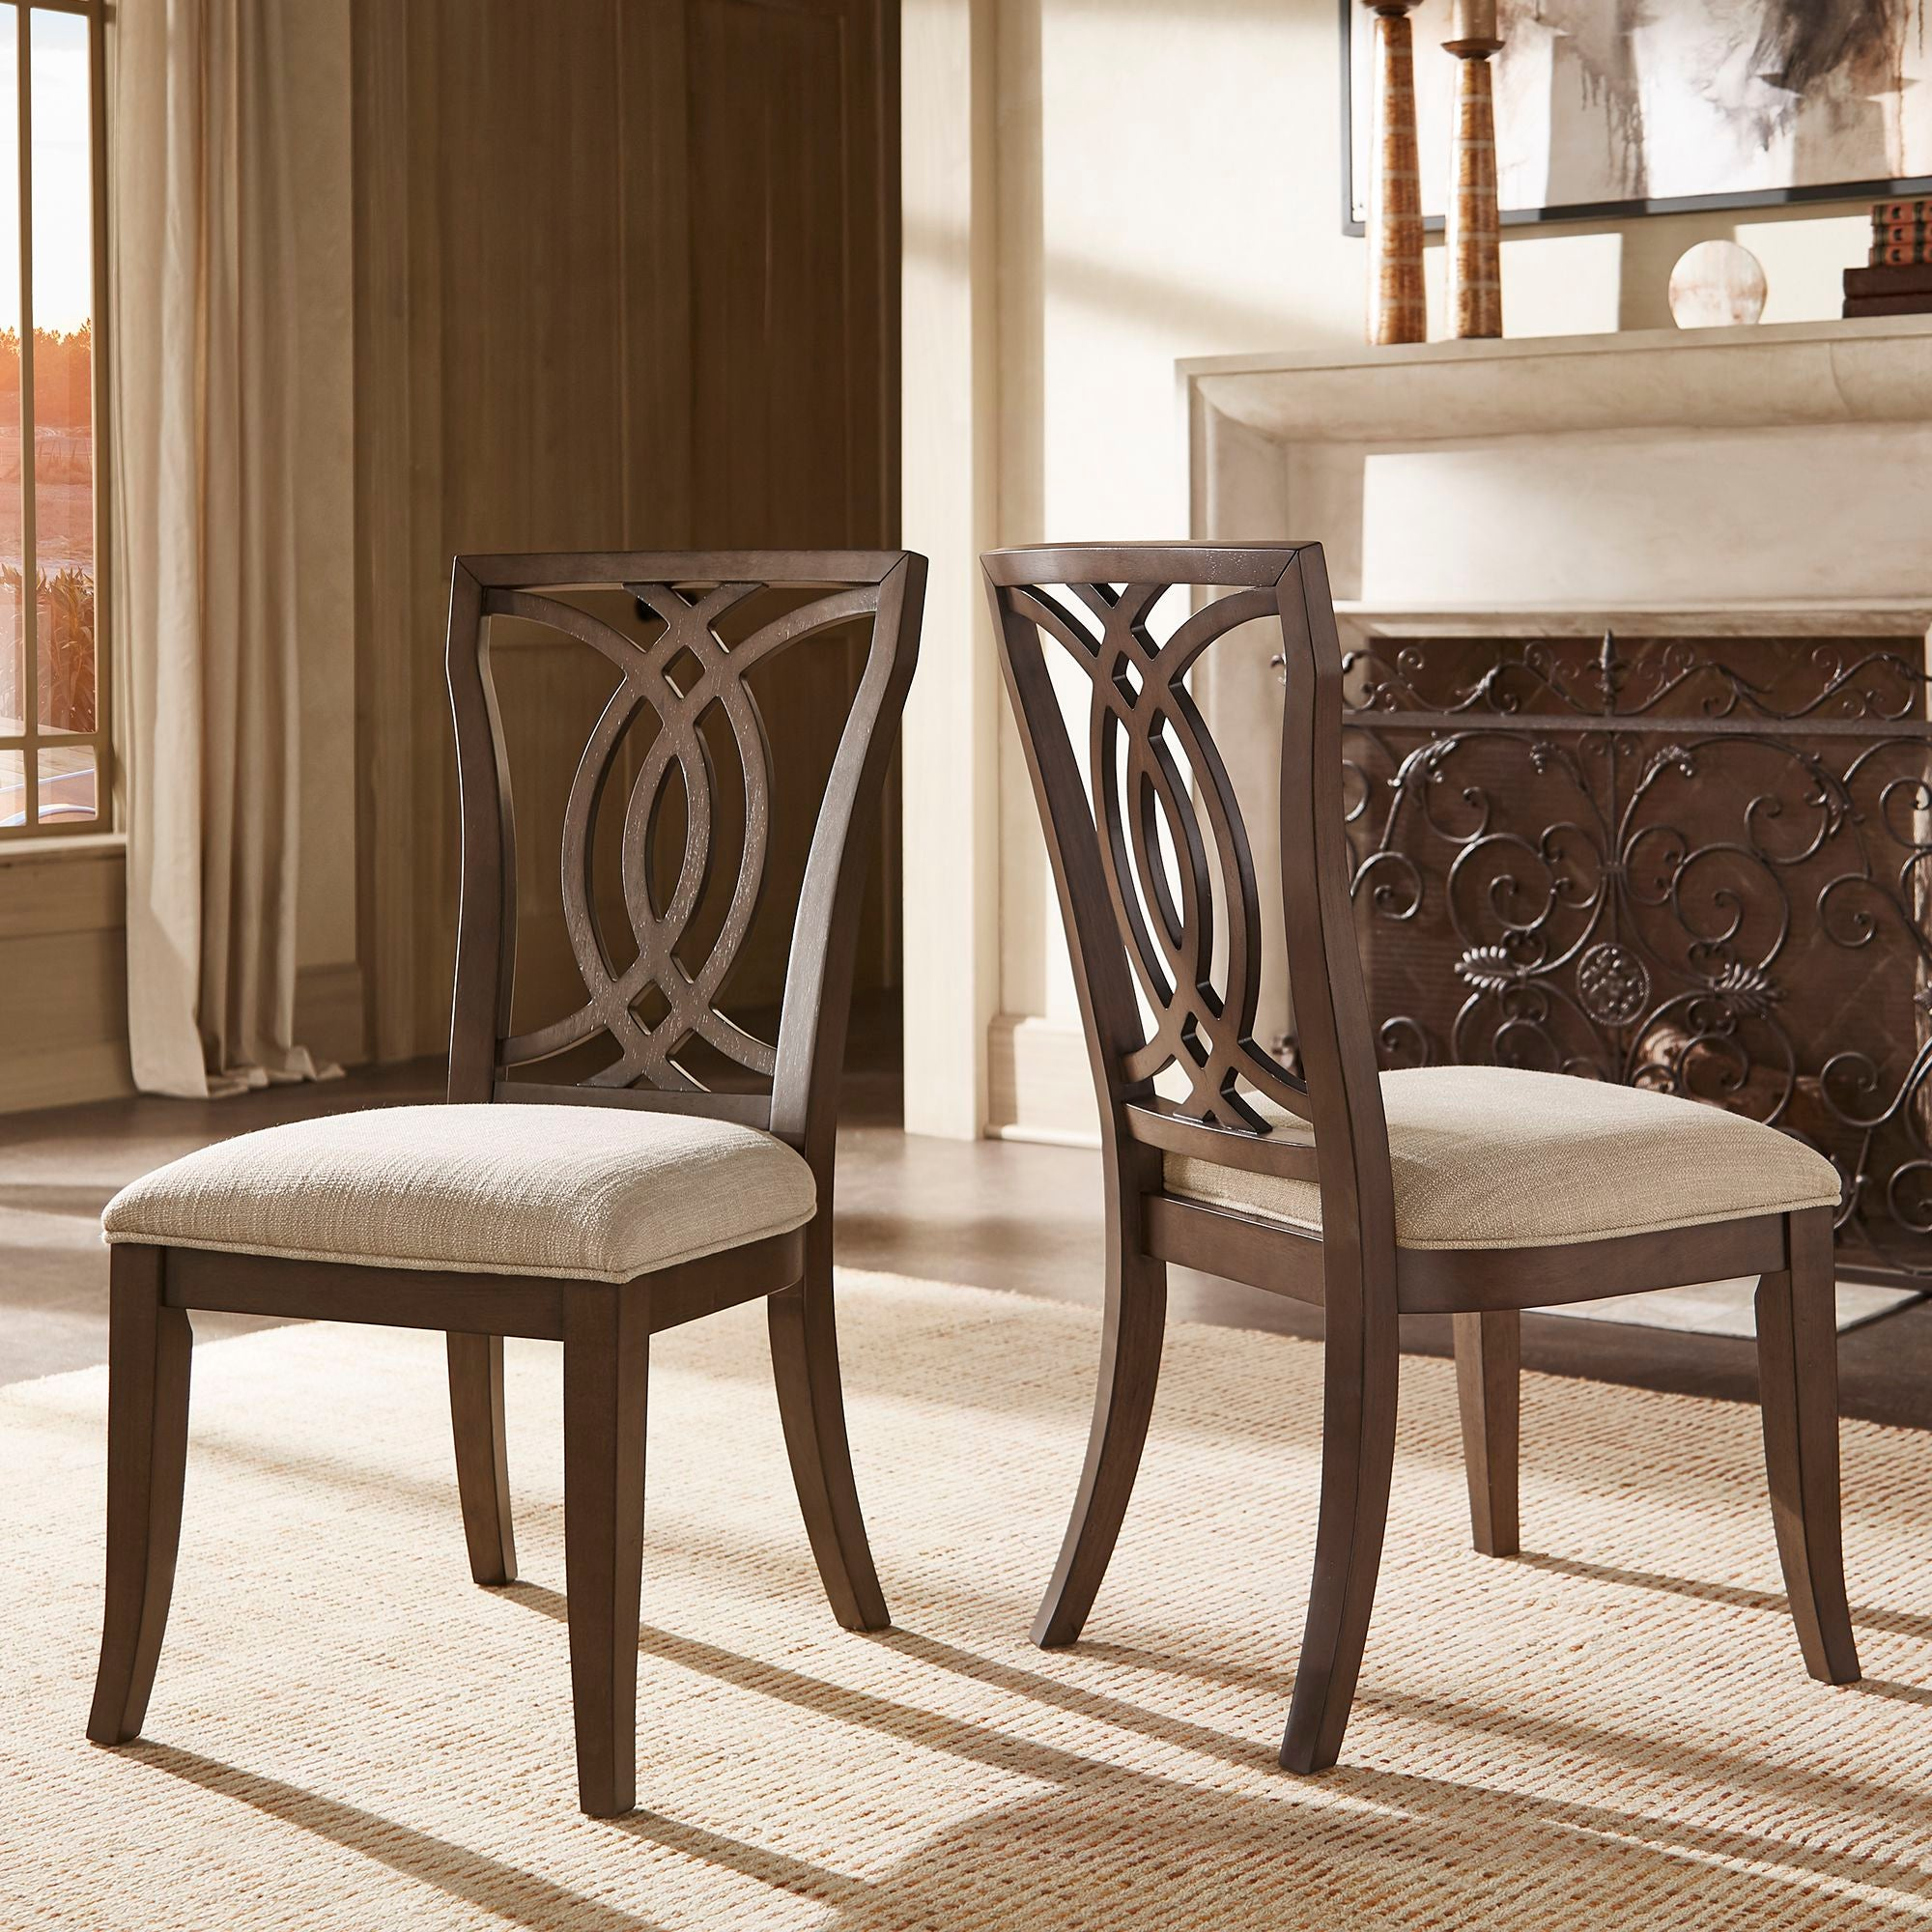 Dark Walnut Finish, Beige Fabric Upholstery, Side Chair (Set of Two)